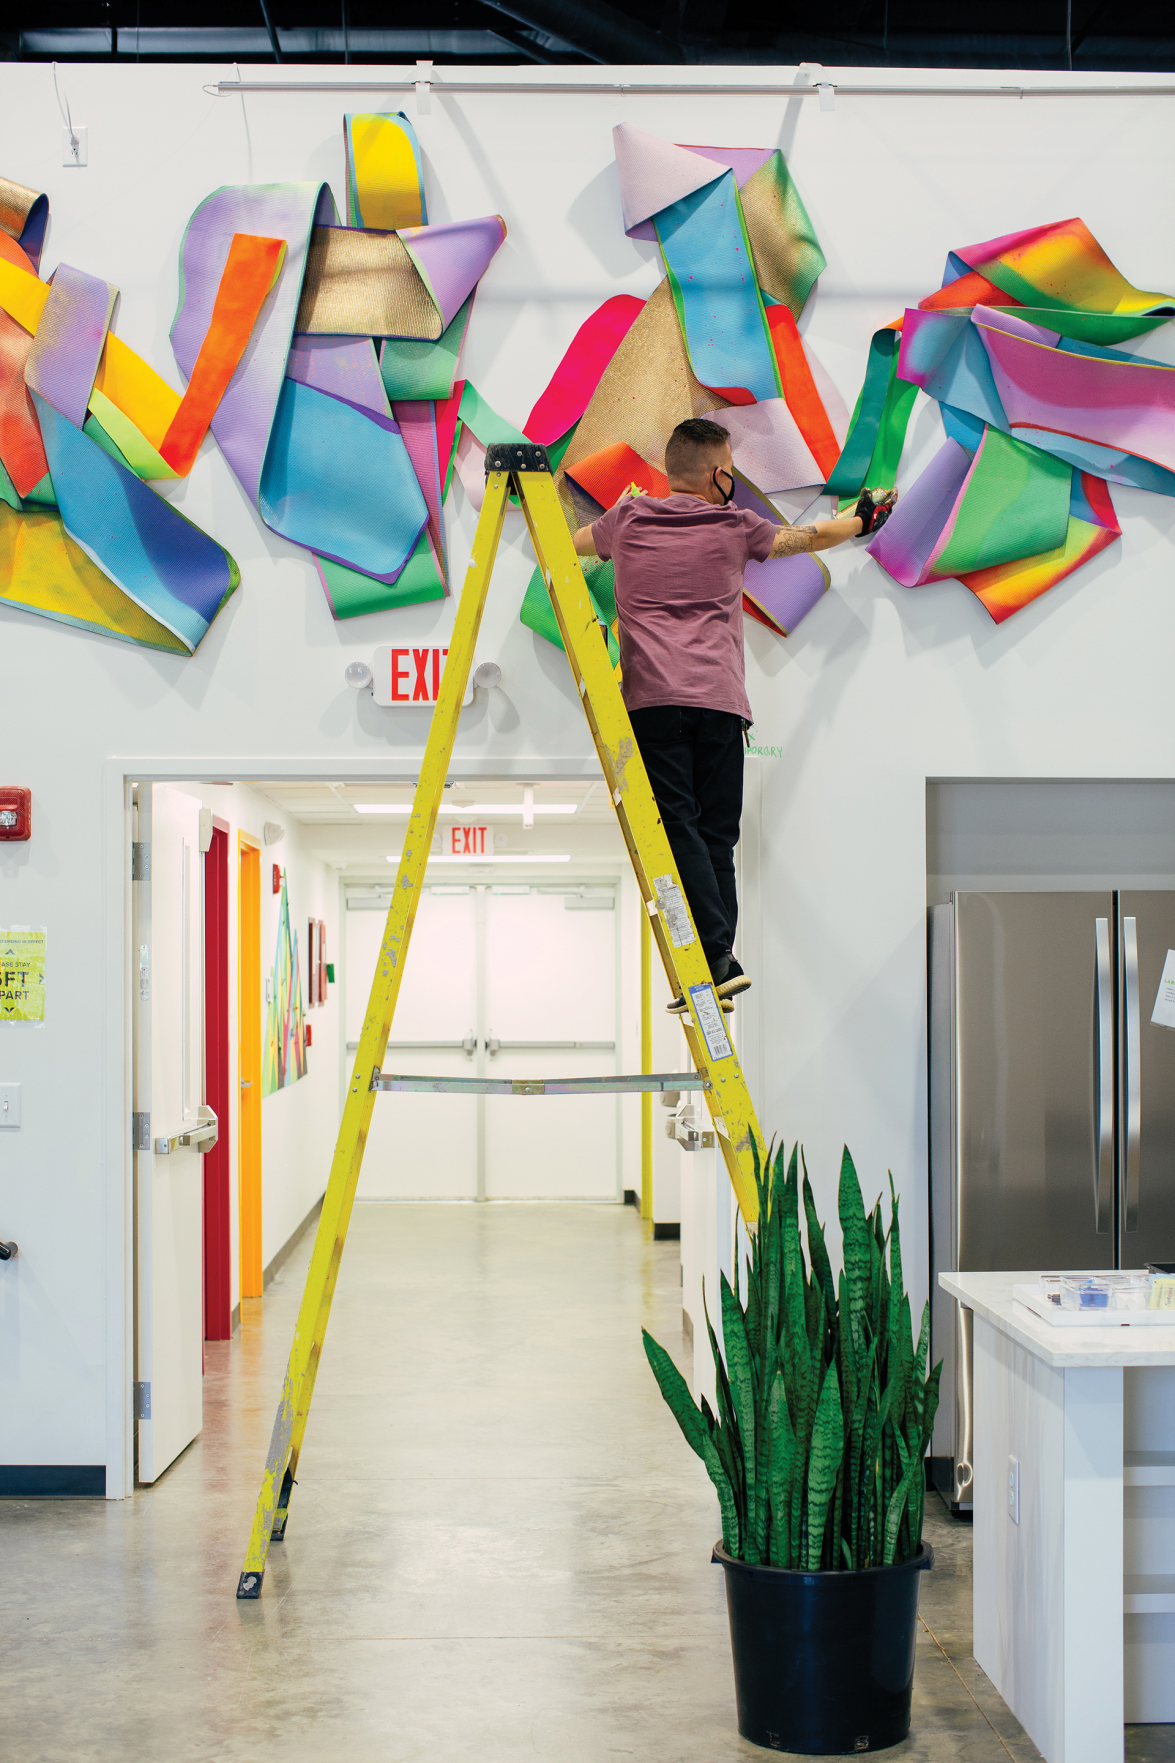 Artwork at New TIRRC Headquarters Shows Immigrant Rights Movement's Resilience